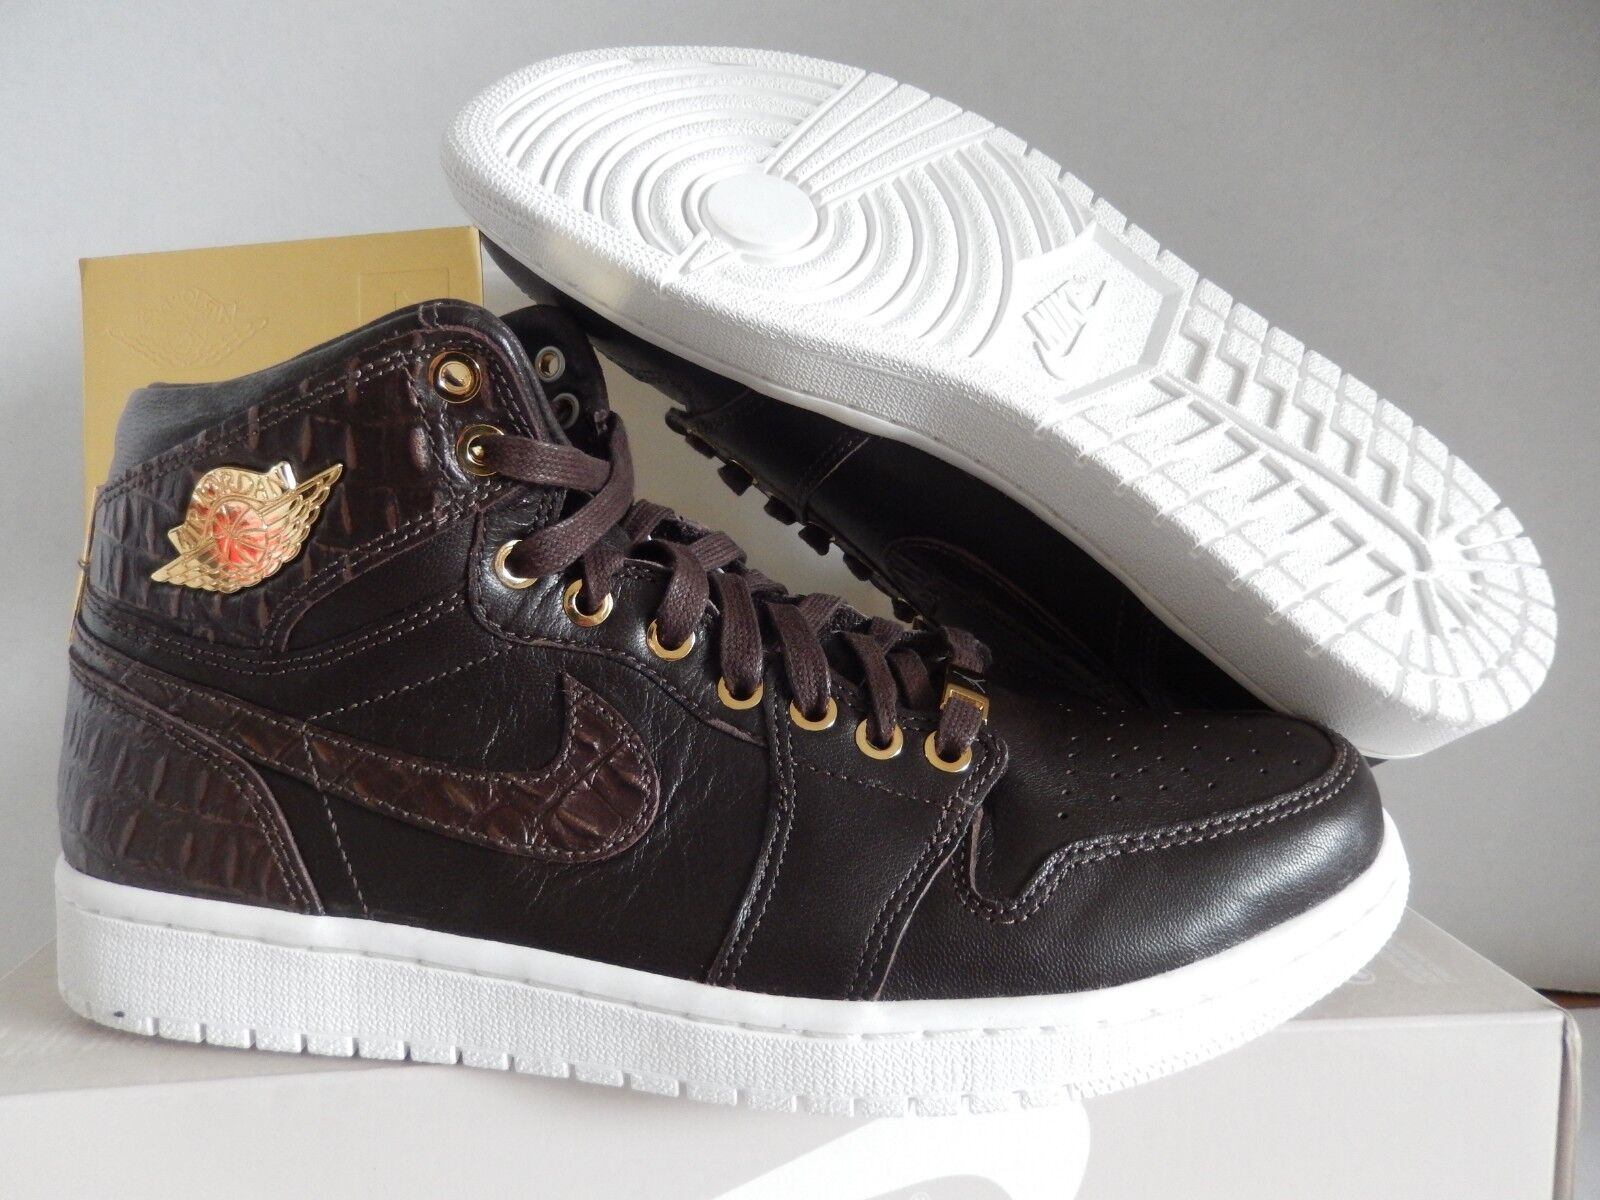 NIKE AIR JORDAN 1 PINNACLE BBQ BROWN-METALLIC GOLD-WHITE SZ SZ SZ 8 [705075-205] b6a4a3